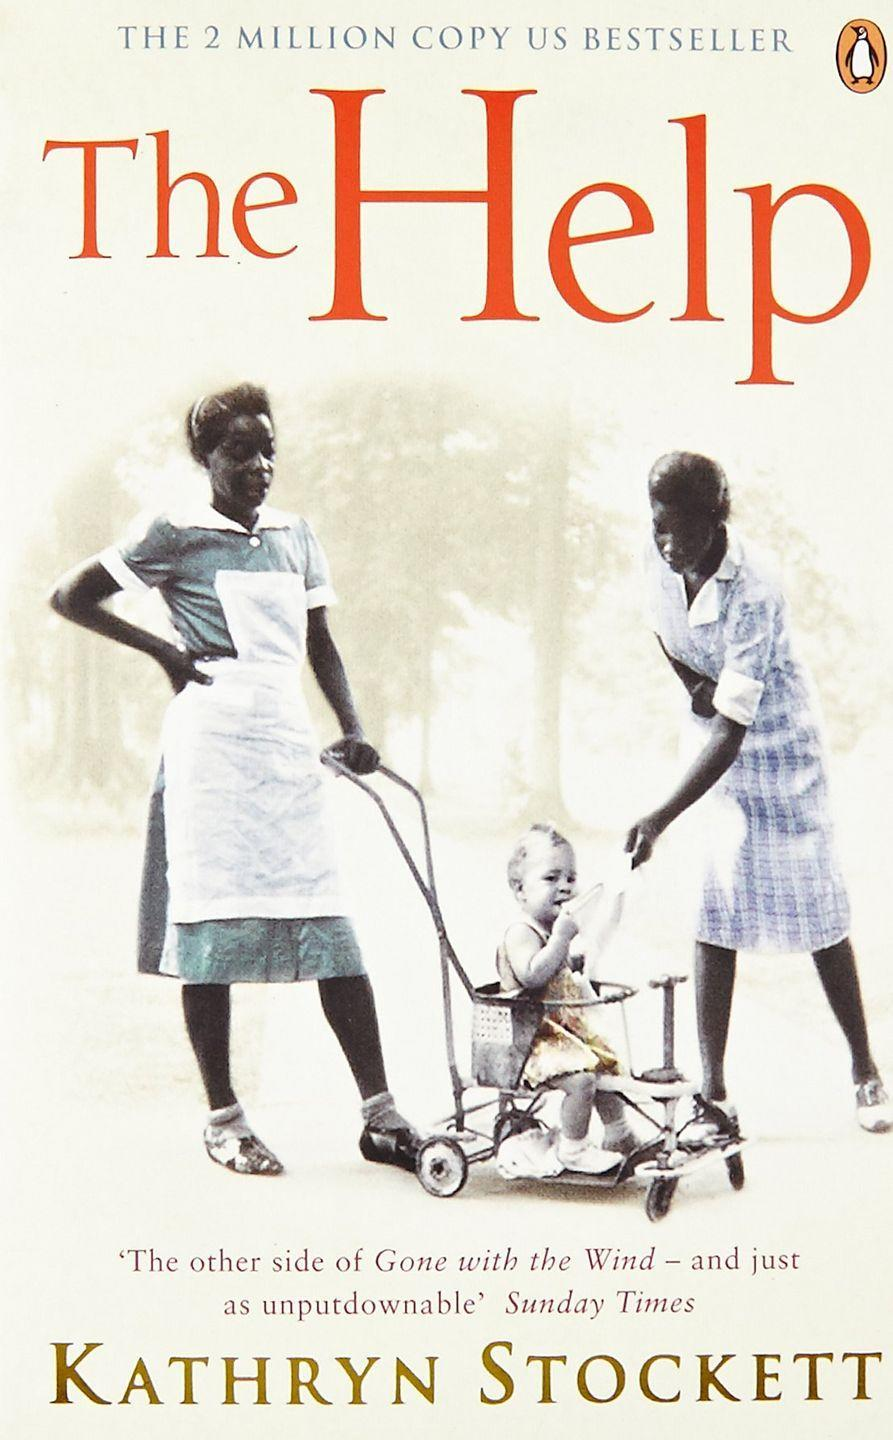 "<p>Now an Oscar nominated film, Kathryn Stockett's 2009 novel is narrated by Minny and Aibileen, two black maids, and Miss Skeeter, a white woman who wants to be a writer. The story takes place in Mississippi in the 1960s. <br></p><p><a class=""link rapid-noclick-resp"" href=""https://www.amazon.co.uk/Help-Kathryn-Stockett/dp/0141039280/ref=sr_1_2?dchild=1&keywords=the+help&qid=1586949975&sr=8-2&tag=hearstuk-yahoo-21&ascsubtag=%5Bartid%7C1921.g.32141605%5Bsrc%7Cyahoo-uk"" rel=""nofollow noopener"" target=""_blank"" data-ylk=""slk:SHOP NOW"">SHOP NOW</a></p>"